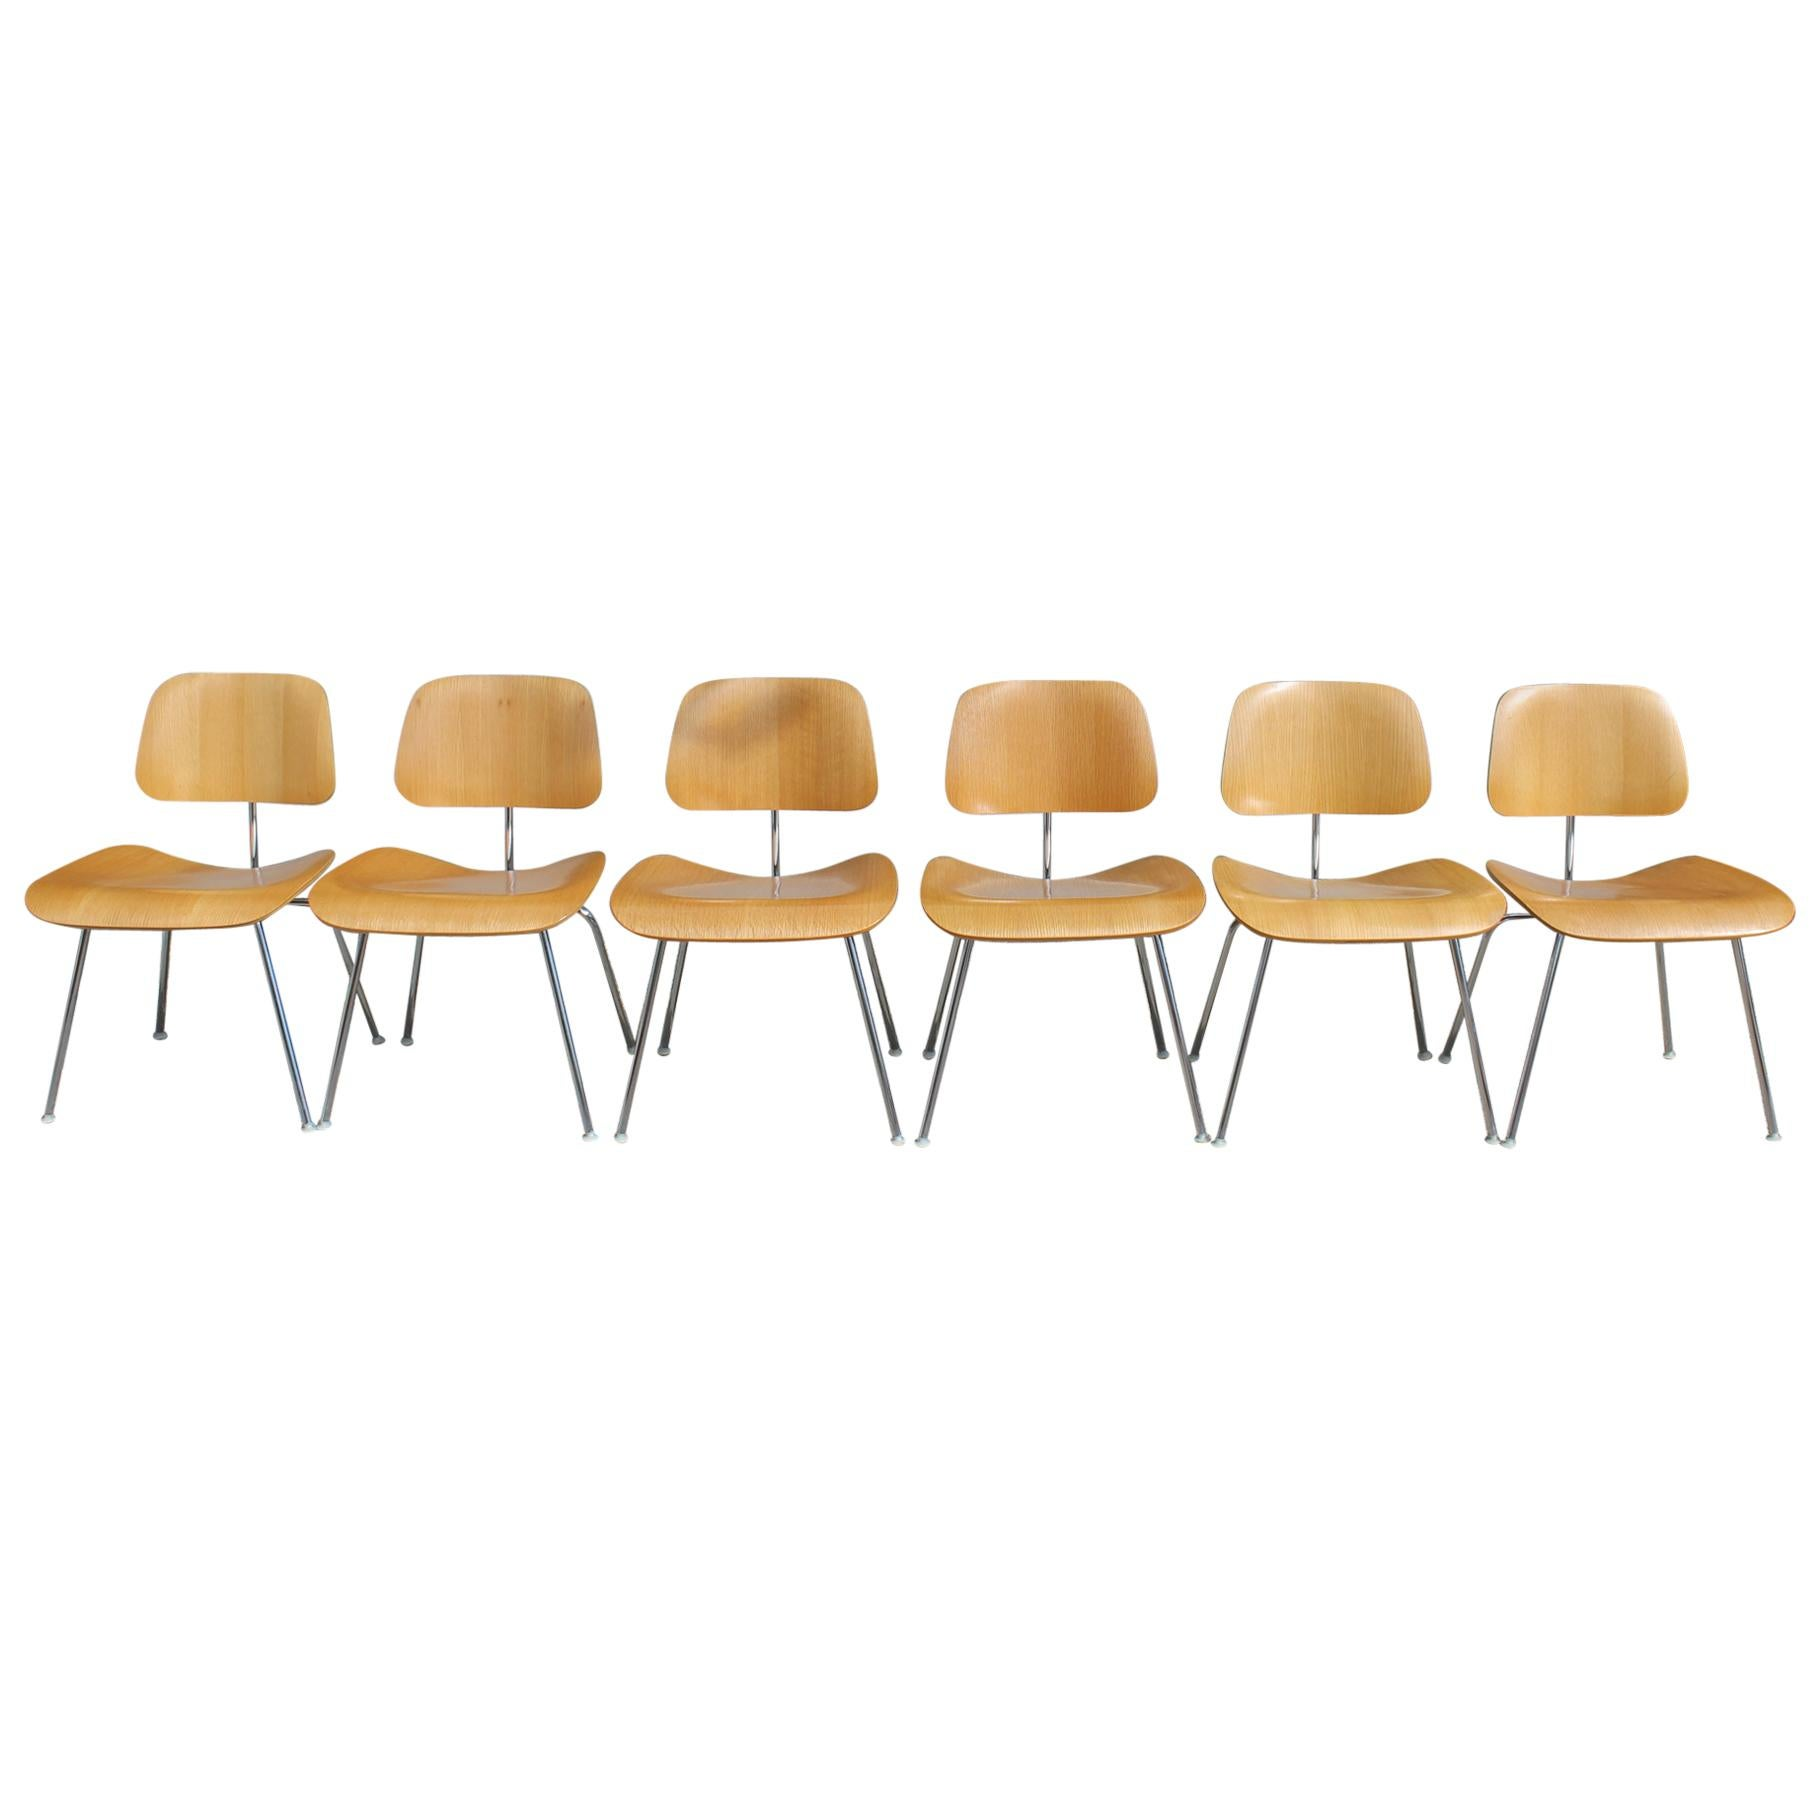 Six Charles and Ray Eames DCM Chairs